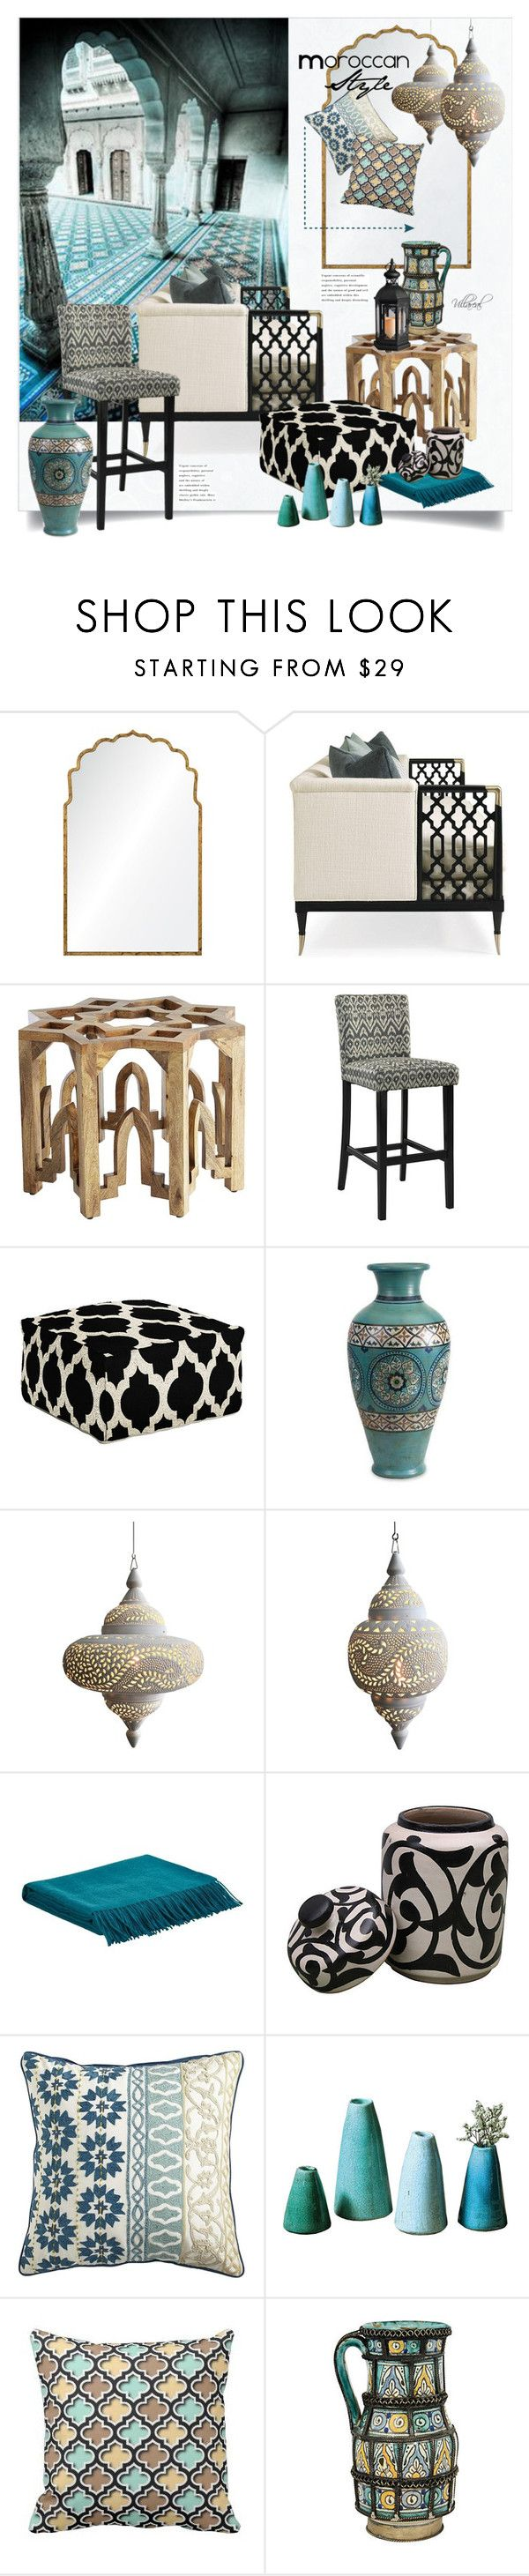 """məˈrɒkən"" by riza-villareal on Polyvore featuring interior, interiors, interior design, дом, home decor, interior decorating, Mirror Image Home, Surya, Imax Home и Yves Delorme"